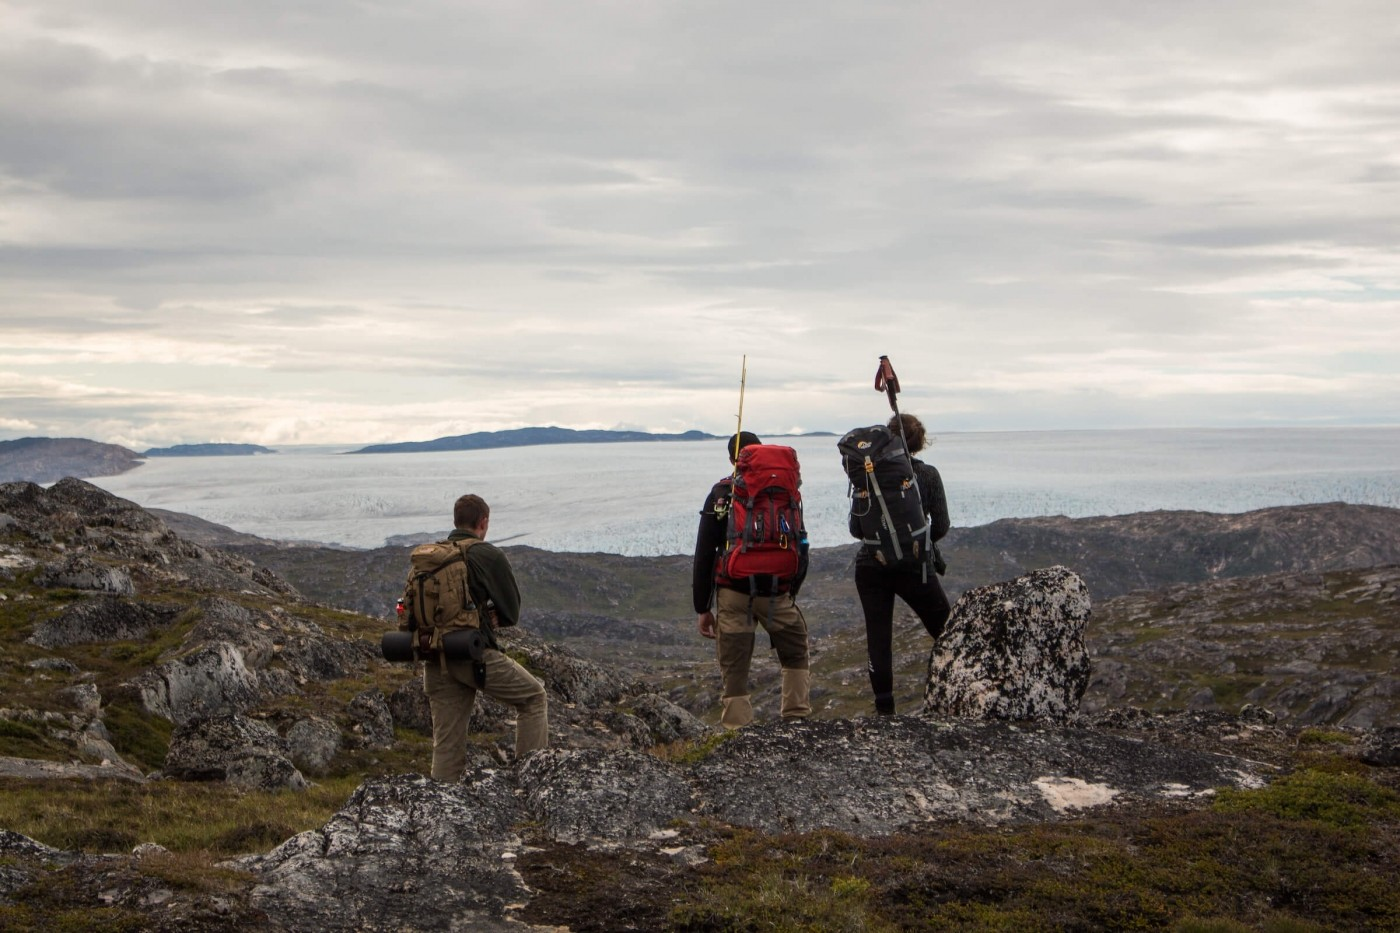 Hikers taking a break to observe the mountains and icesheet surrounding them.